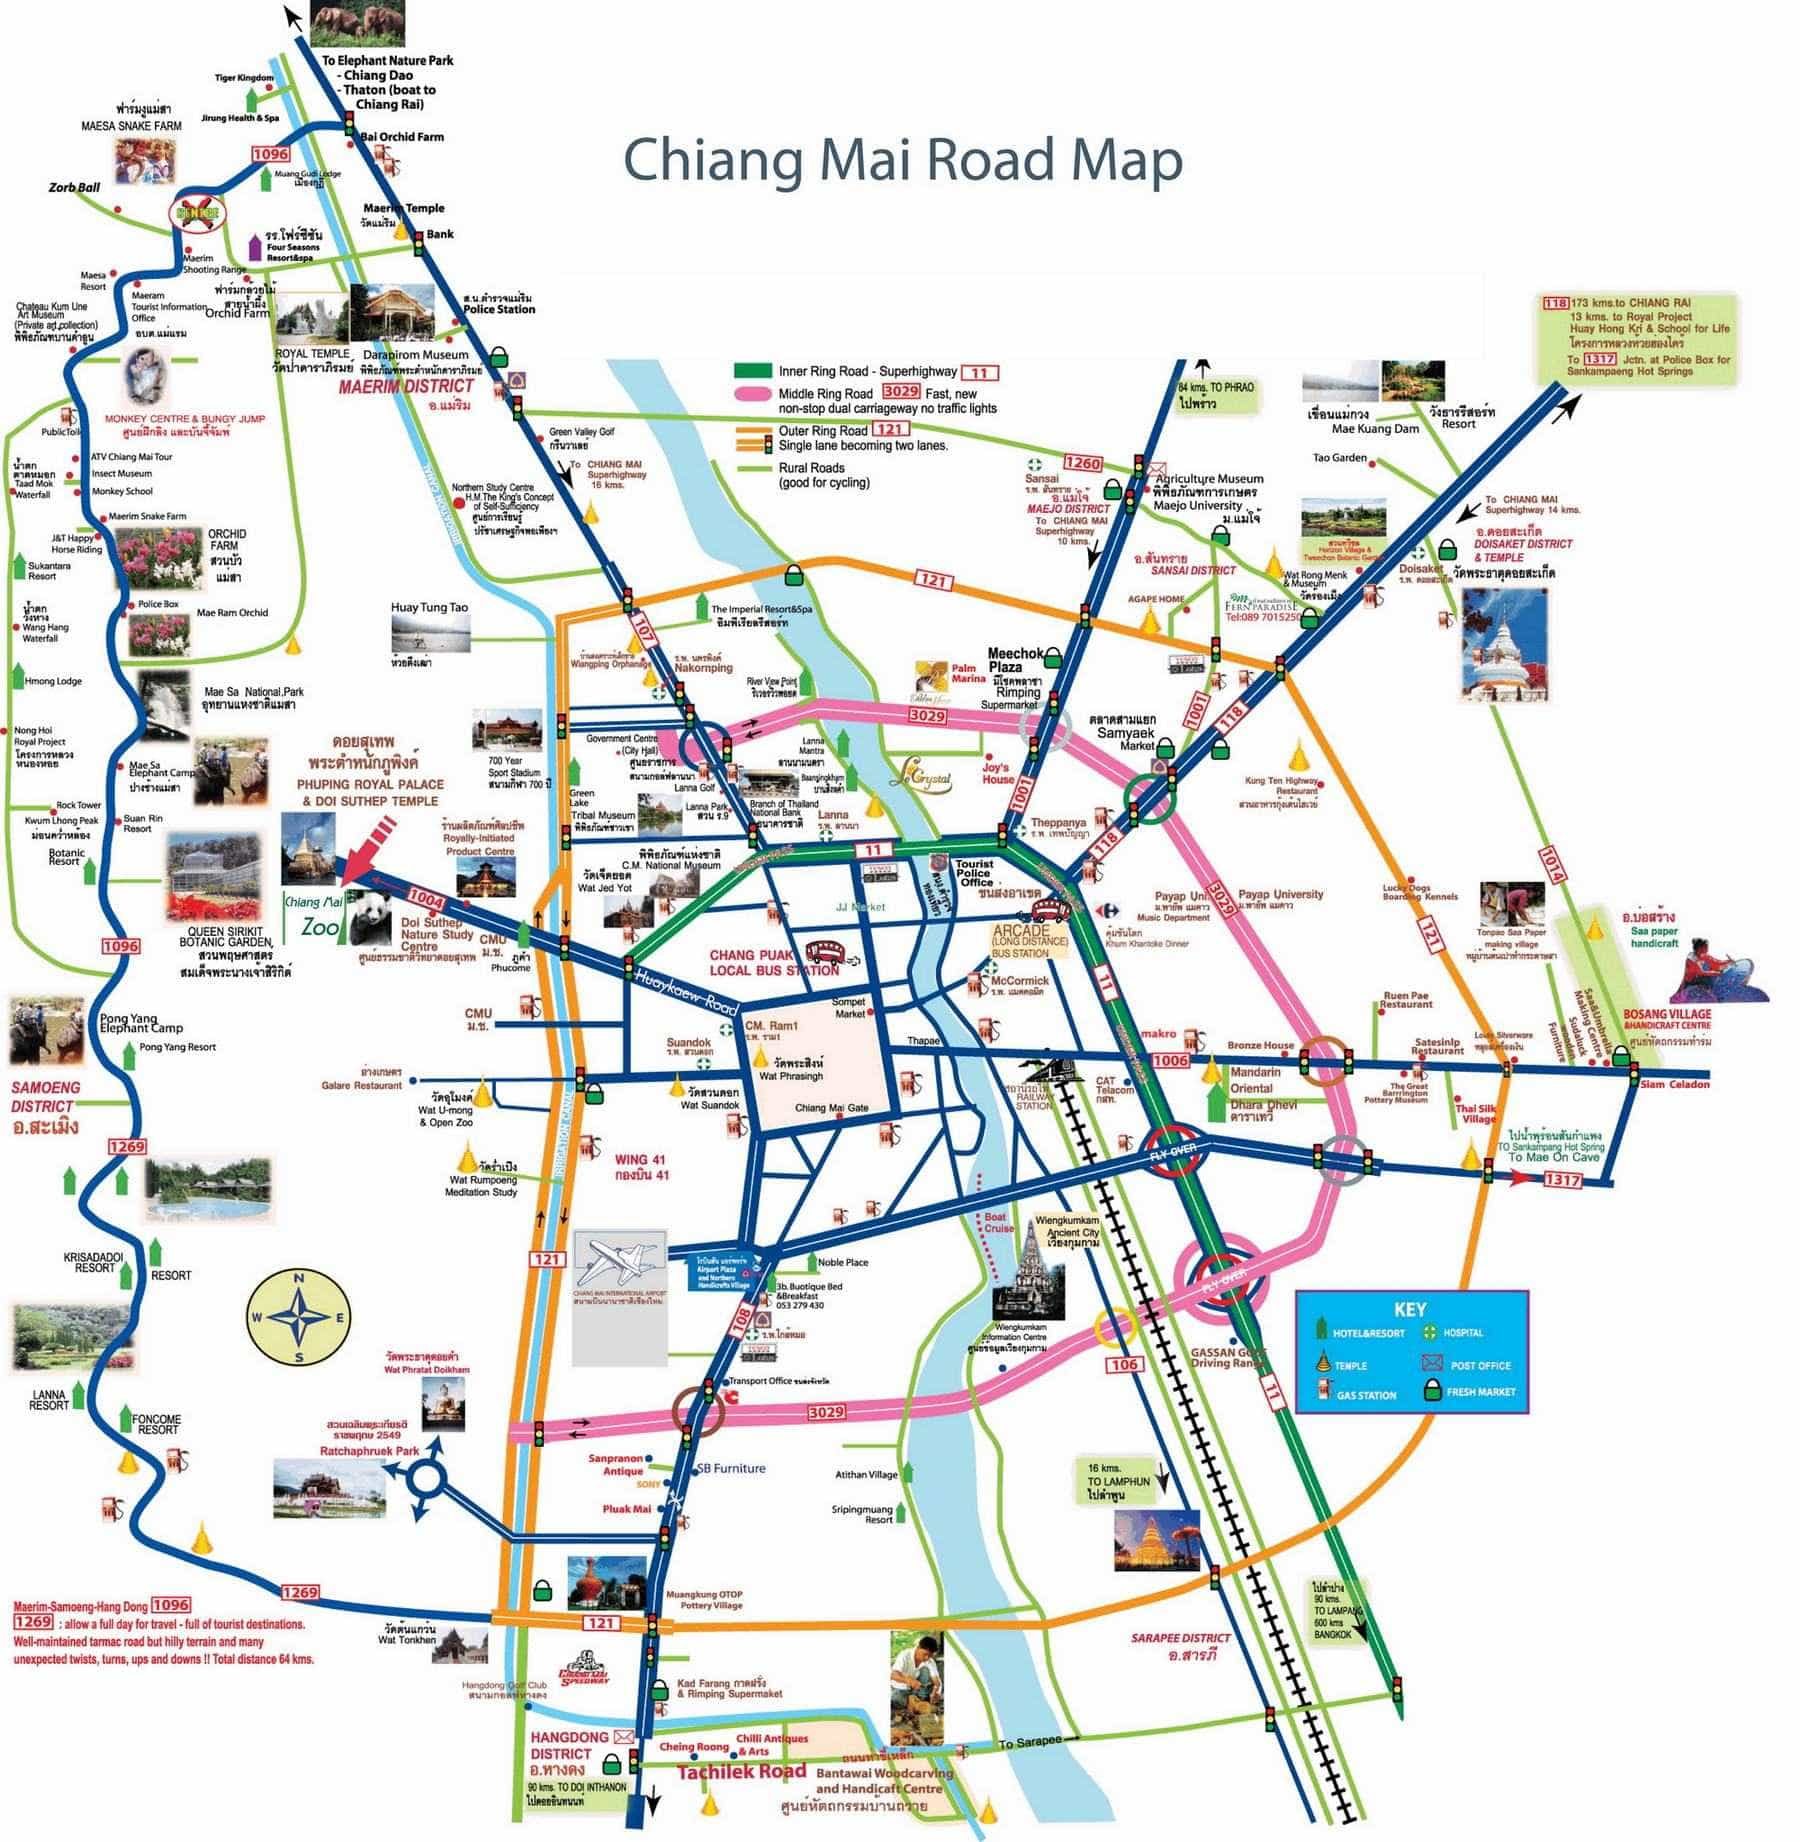 street map of robert la with La Ville De Chiang Mai La Rose Du Nord on Lapd Union City Declare Impasse In Salary Negotiat additionally 32219 likewise Prosthetic Eye Service For The Inland Empire also Fighting The Plague In Medieval Towns as well Housing Chicago Cabrini Green To Parkside Of Old Town.